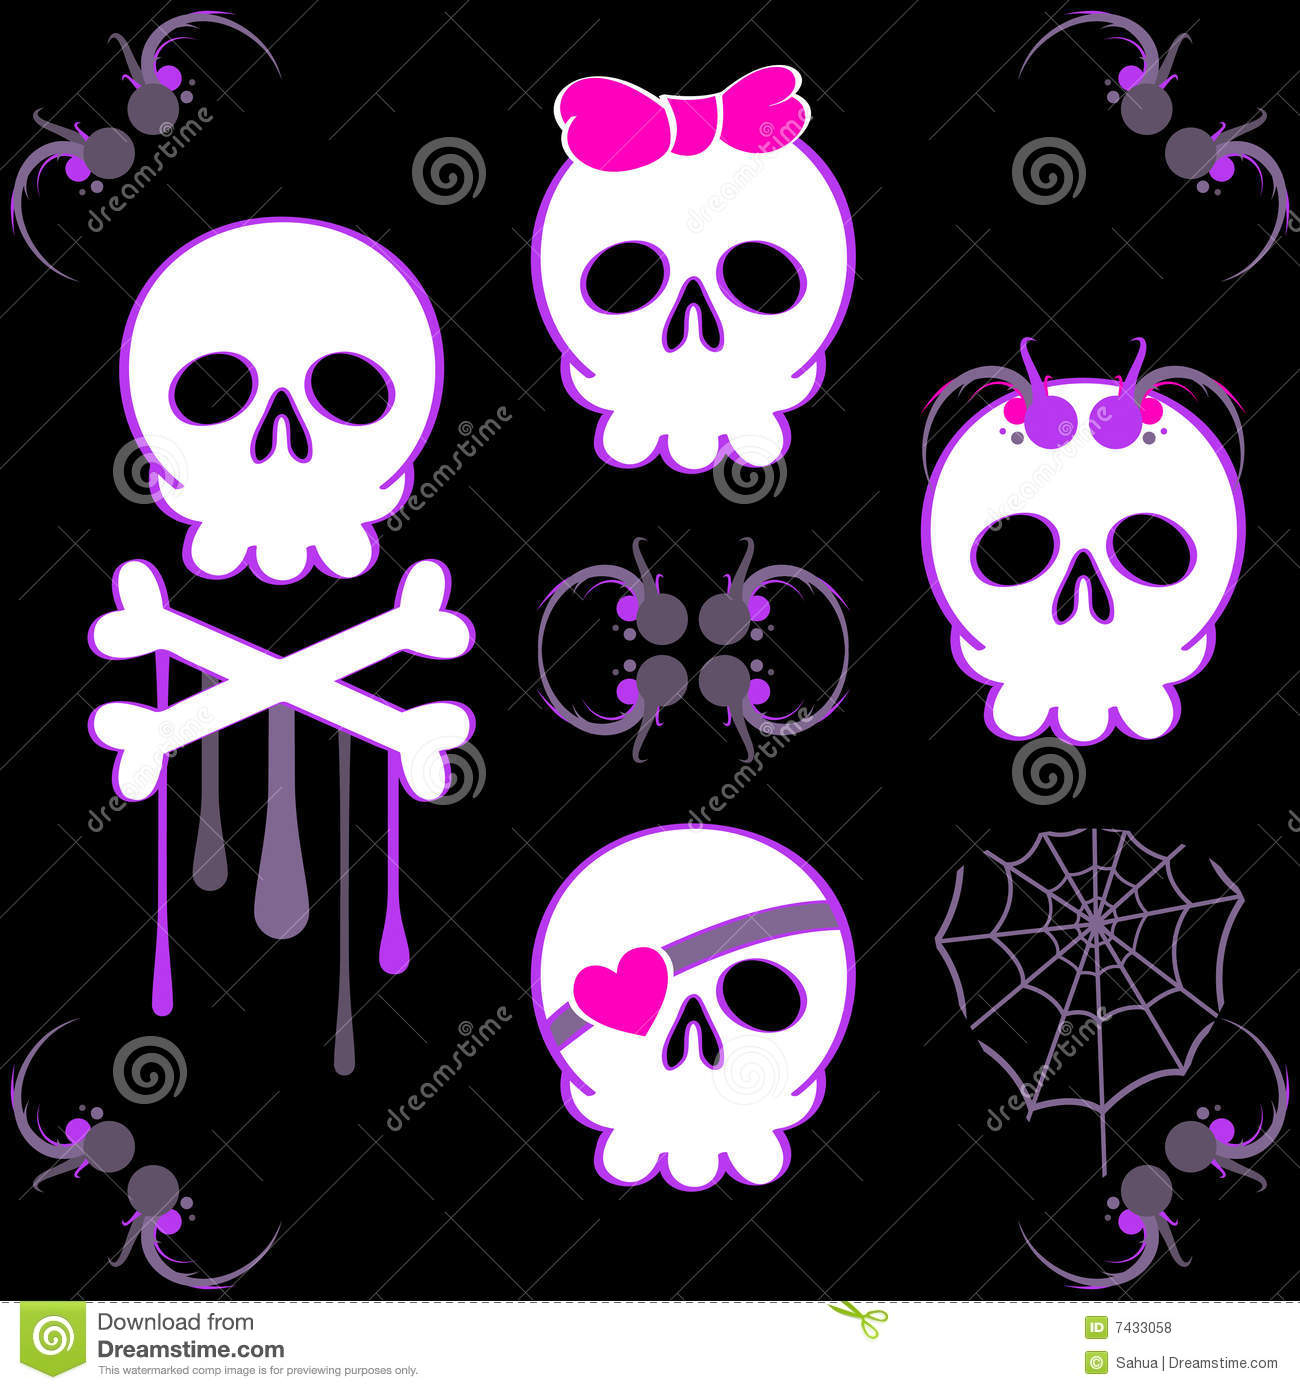 Cute Emo Boy Wallpaper Emo Skulls Royalty Free Stock Photos Image 7433058